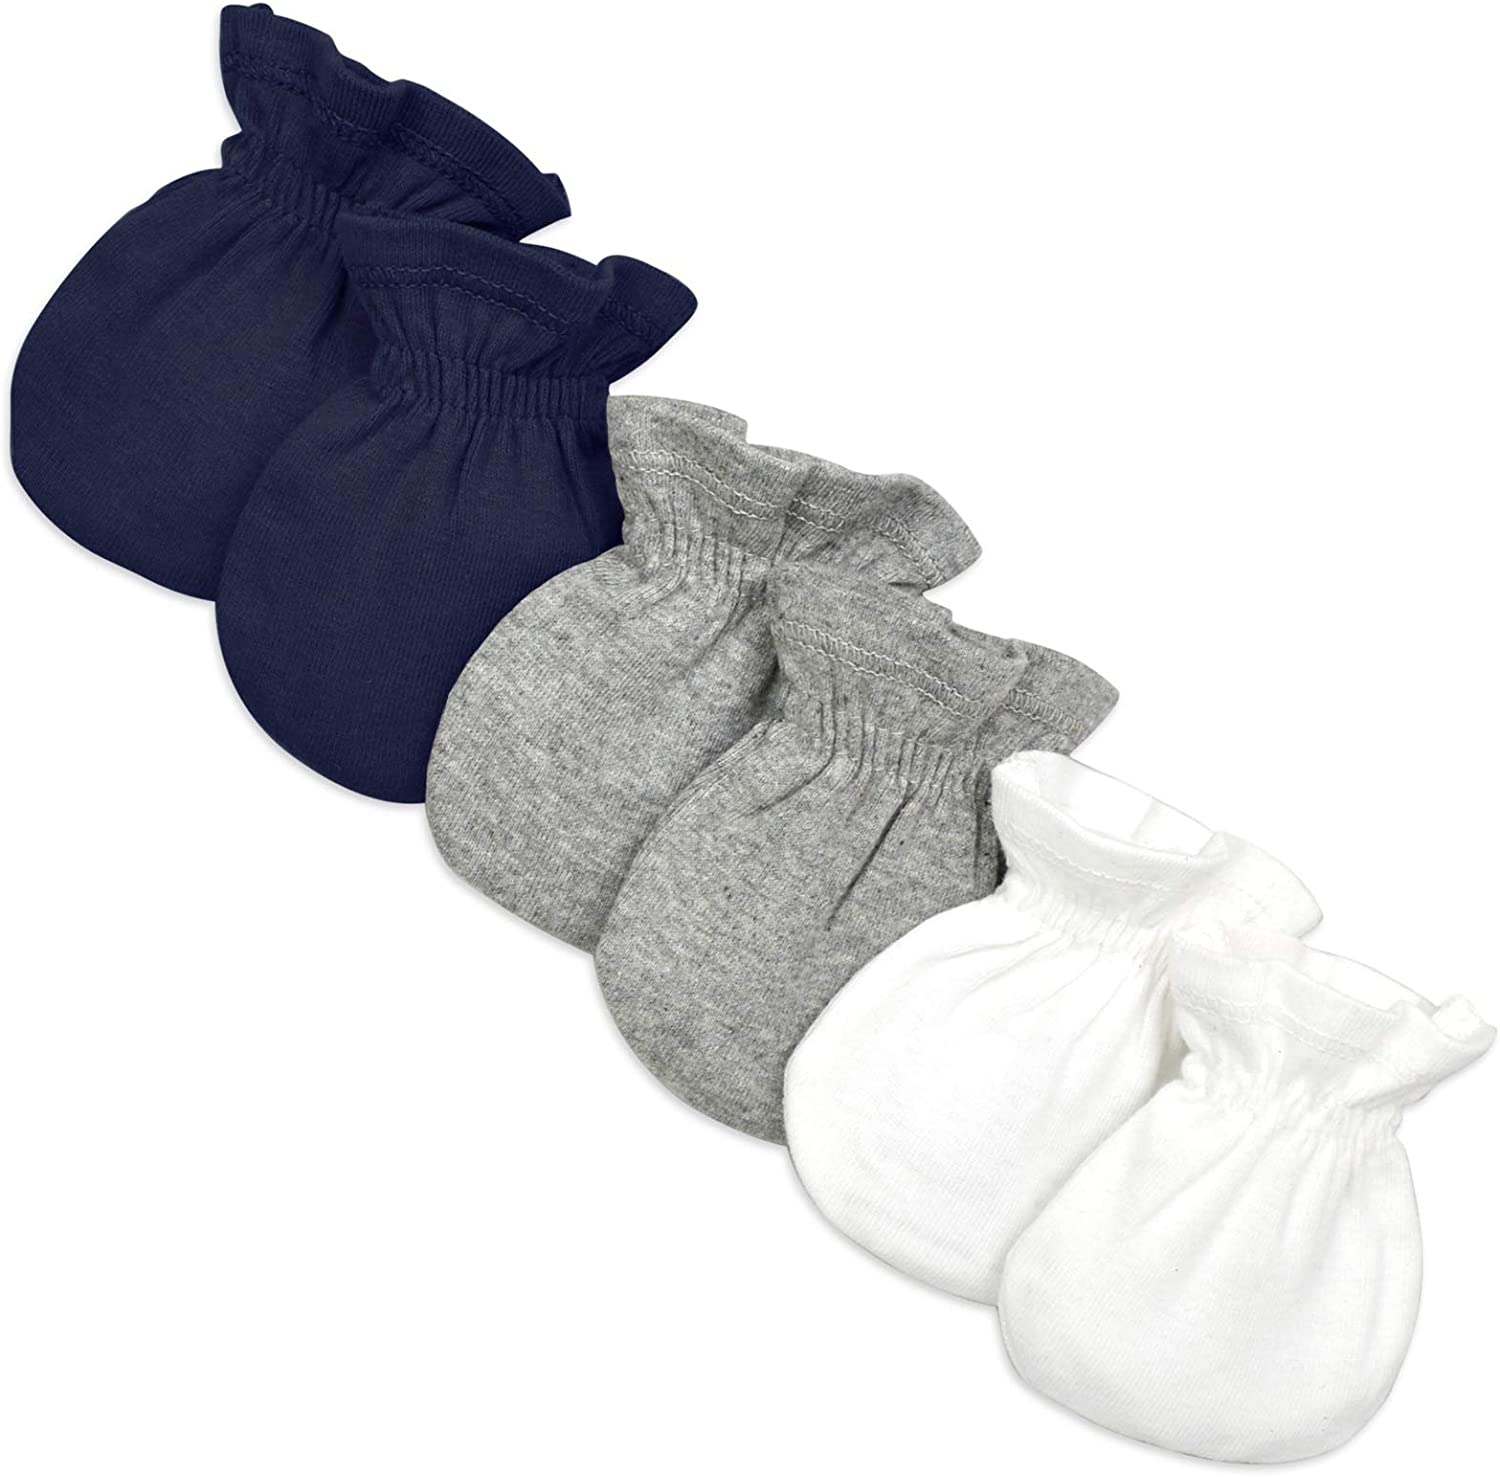 Limited time for free shipping Burt's Bees Baby Girls' Mittens 100% Org No-Scratch Mitts Ranking TOP9